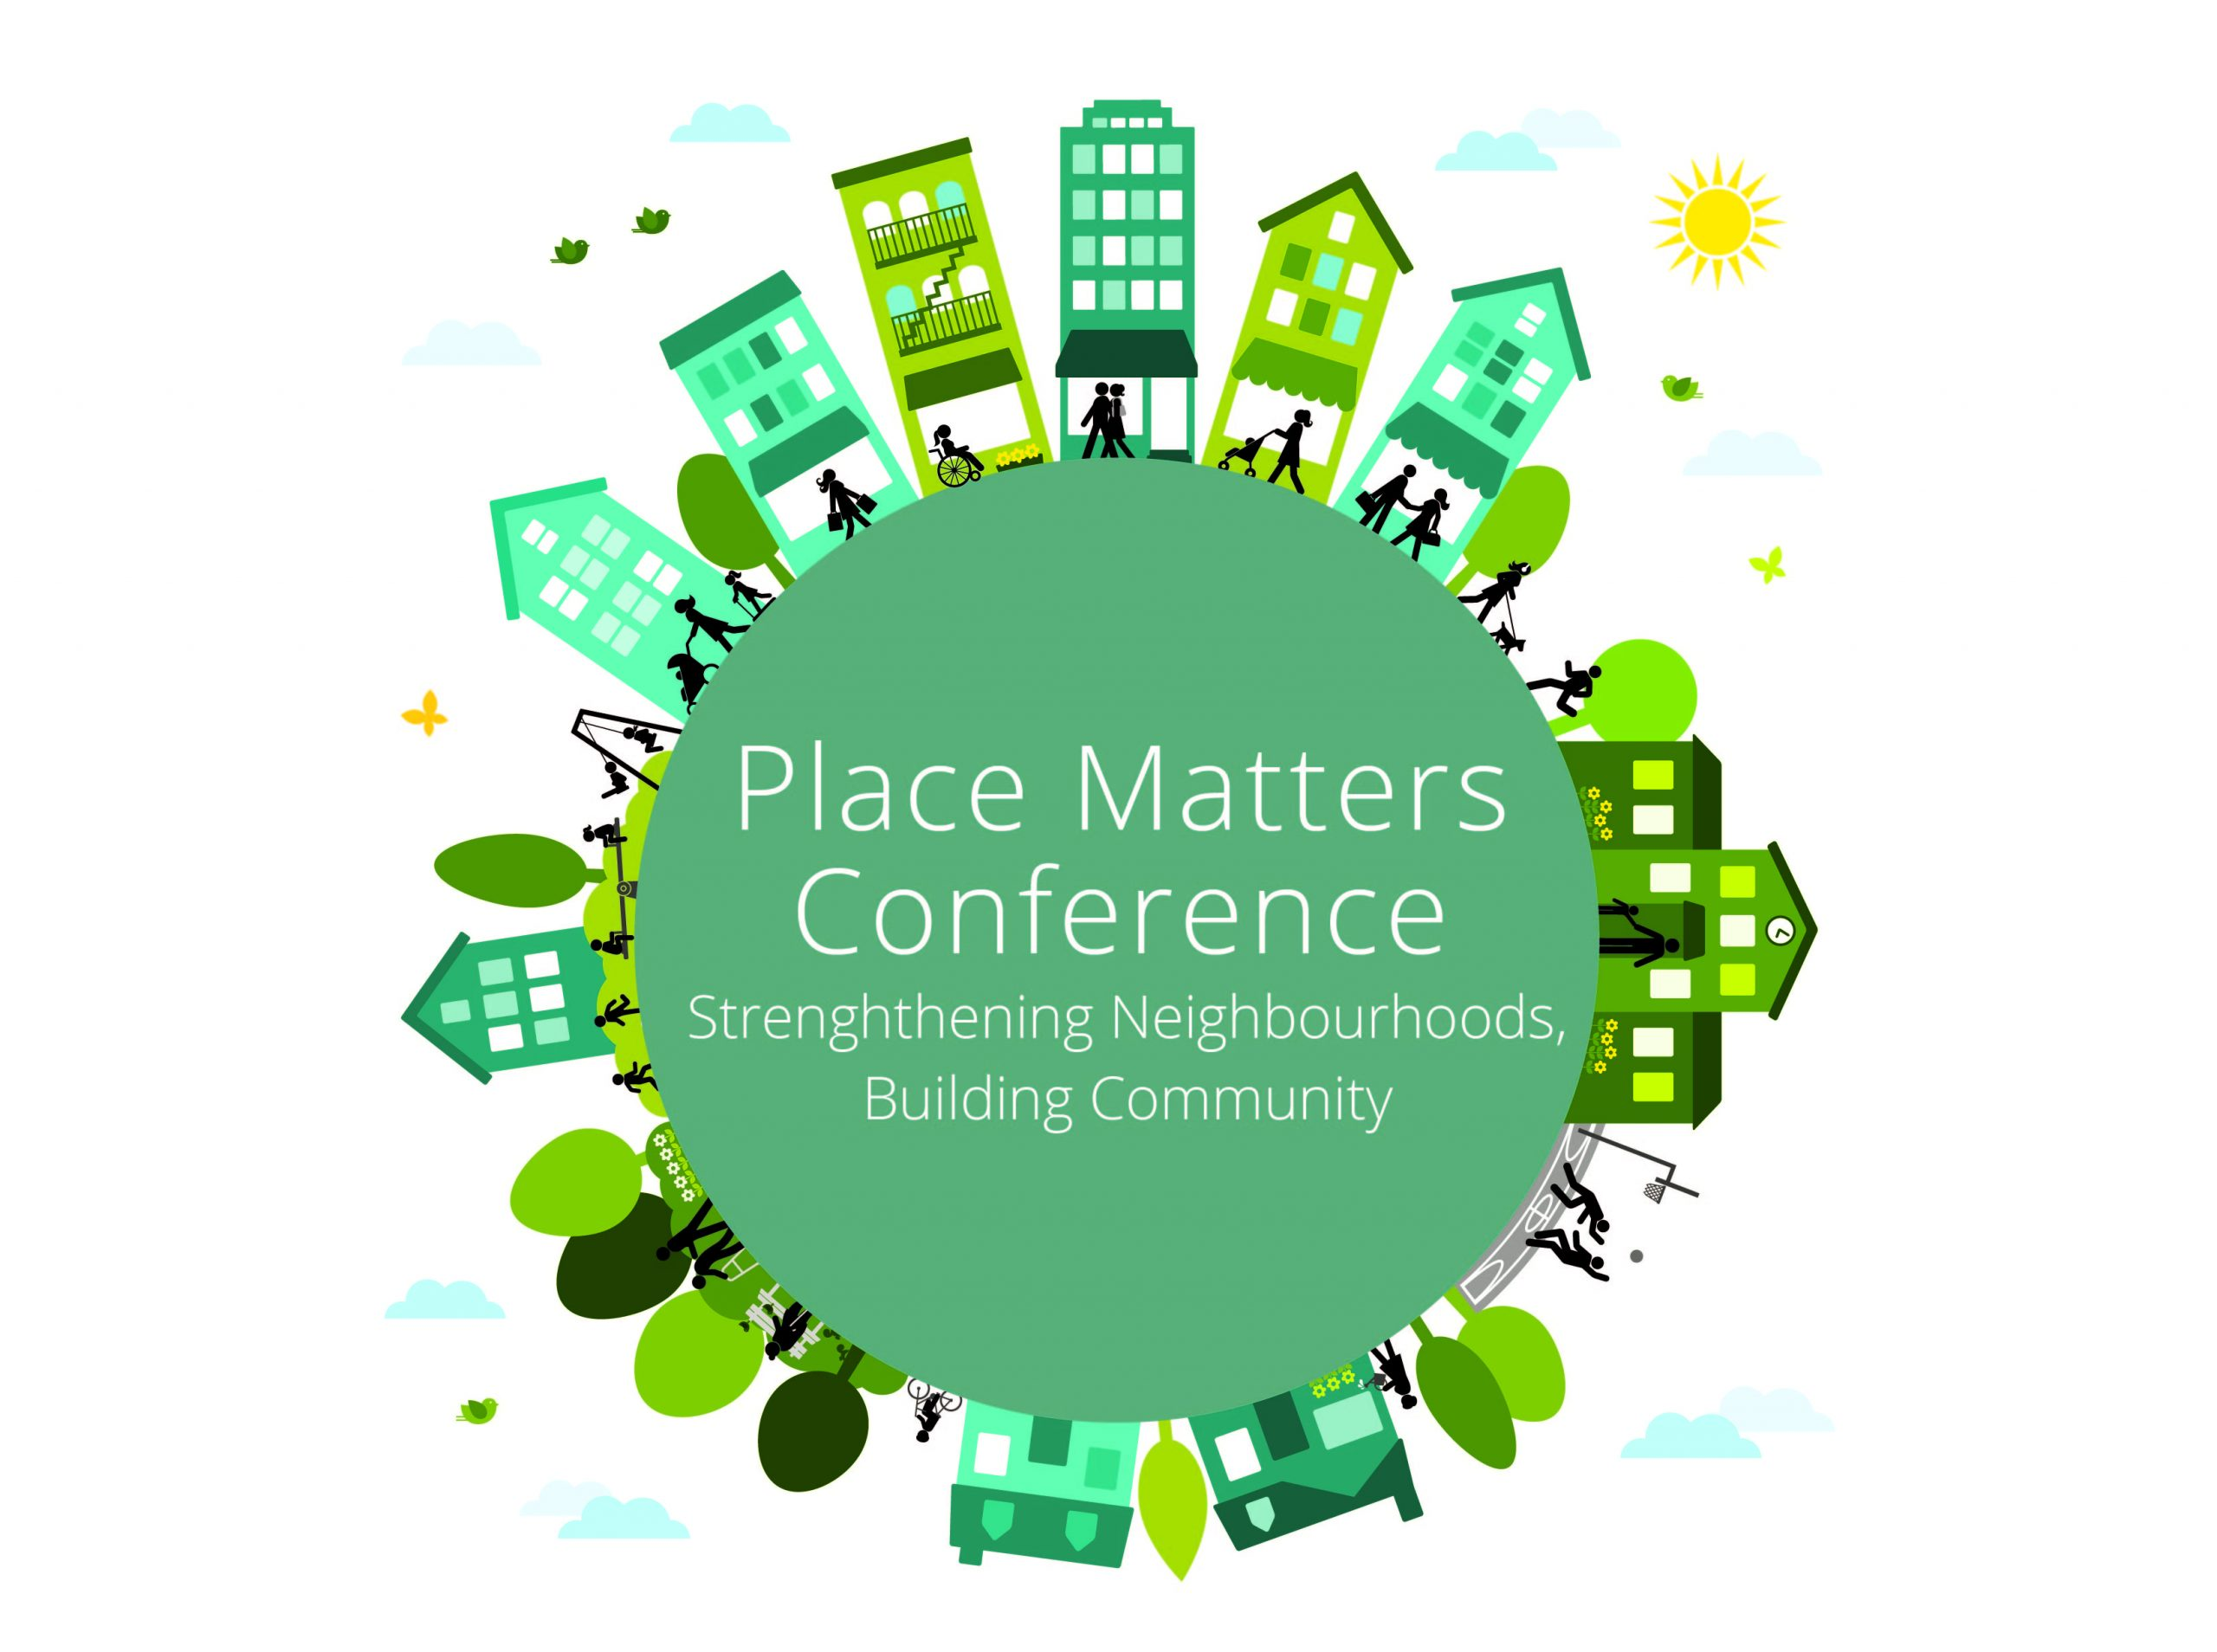 The HEAL's involvement in this year's Place Matters Conference: Strengthening Neighbourhoods, Building Community